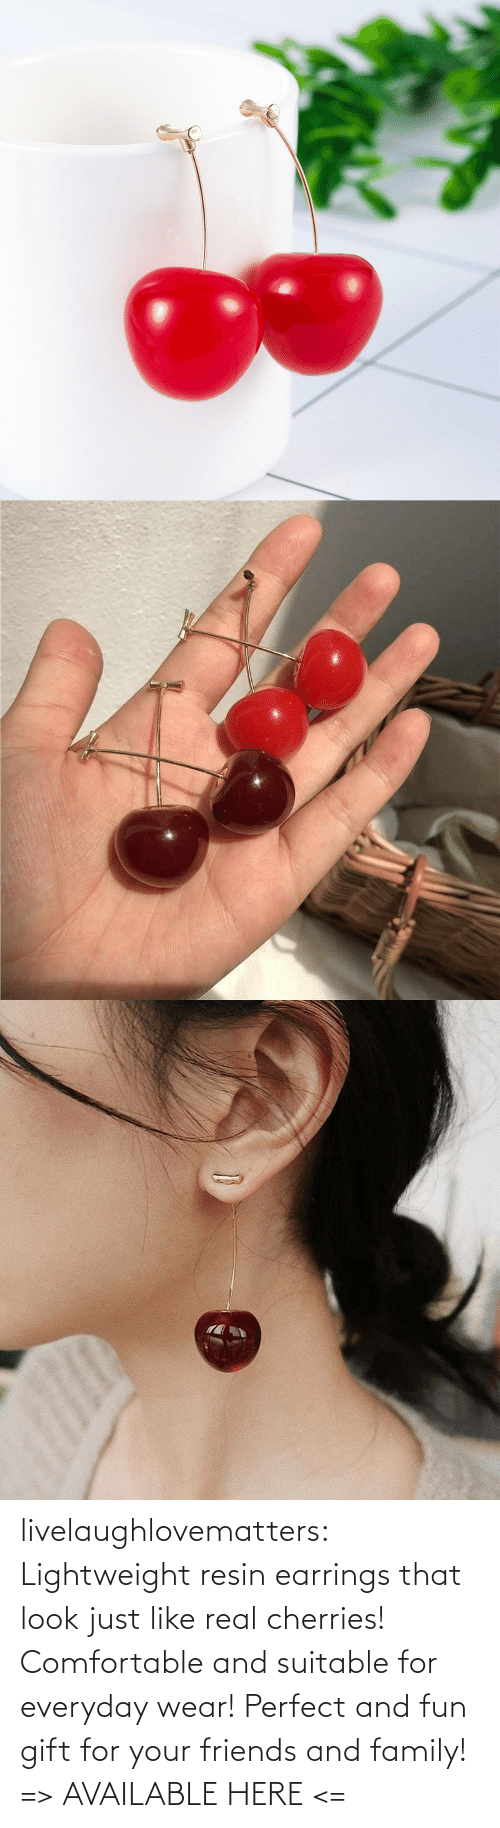 Lightweight: livelaughlovematters: Lightweight resin earrings that look just like real cherries! Comfortable and suitable for everyday wear! Perfect and fun gift for your friends and family! => AVAILABLE HERE <=